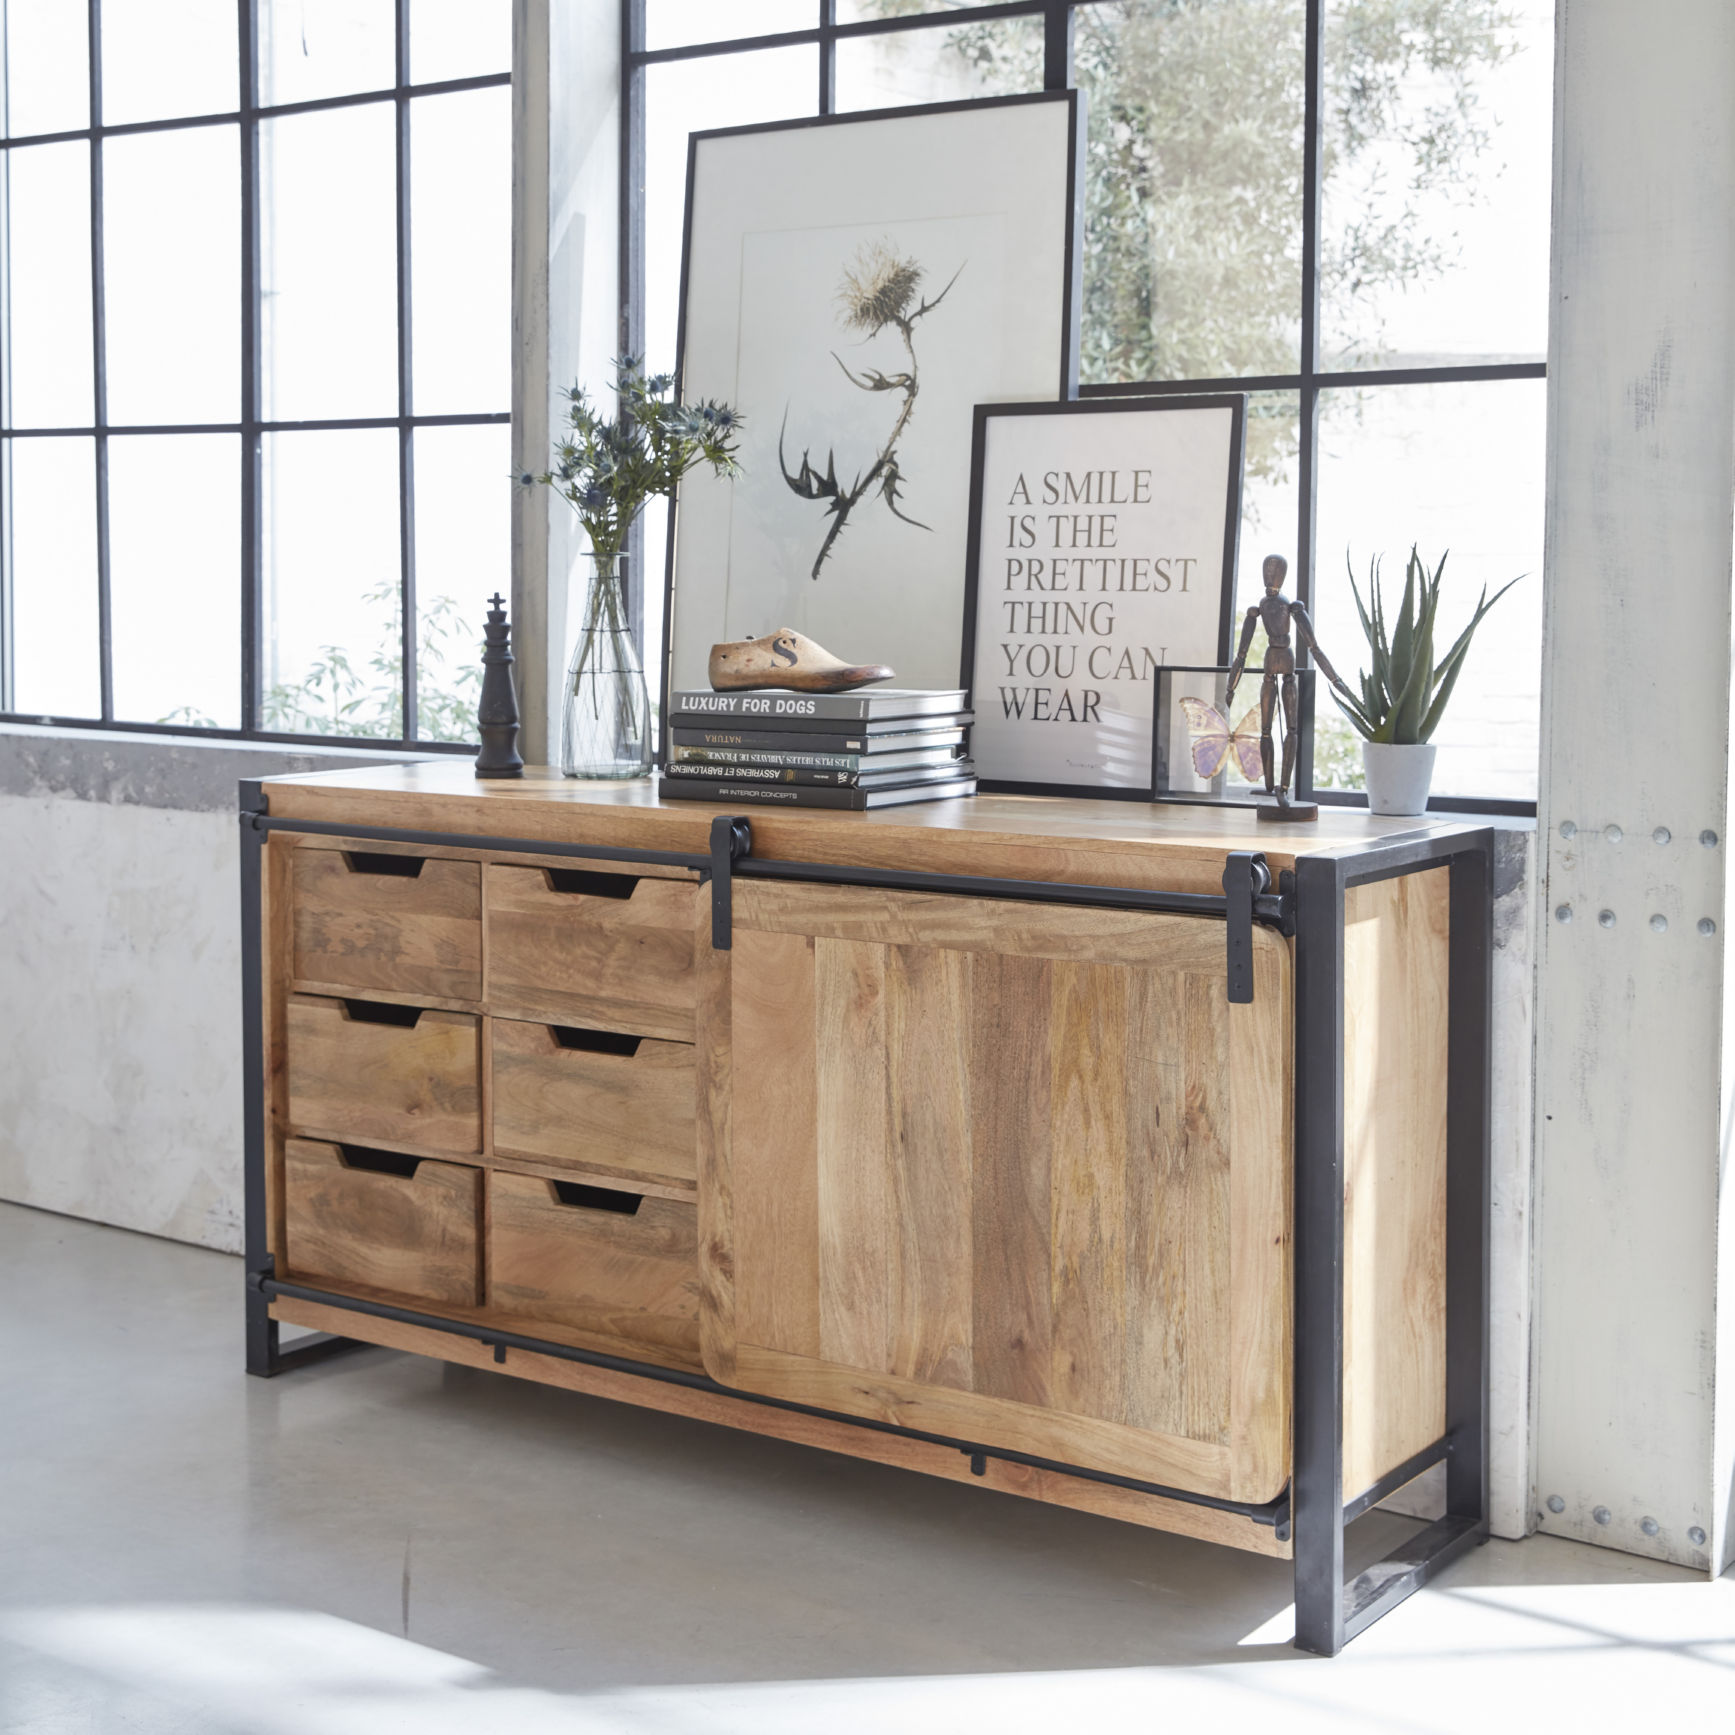 made in meubles meuble industriel bois massif meuble scandinave. Black Bedroom Furniture Sets. Home Design Ideas